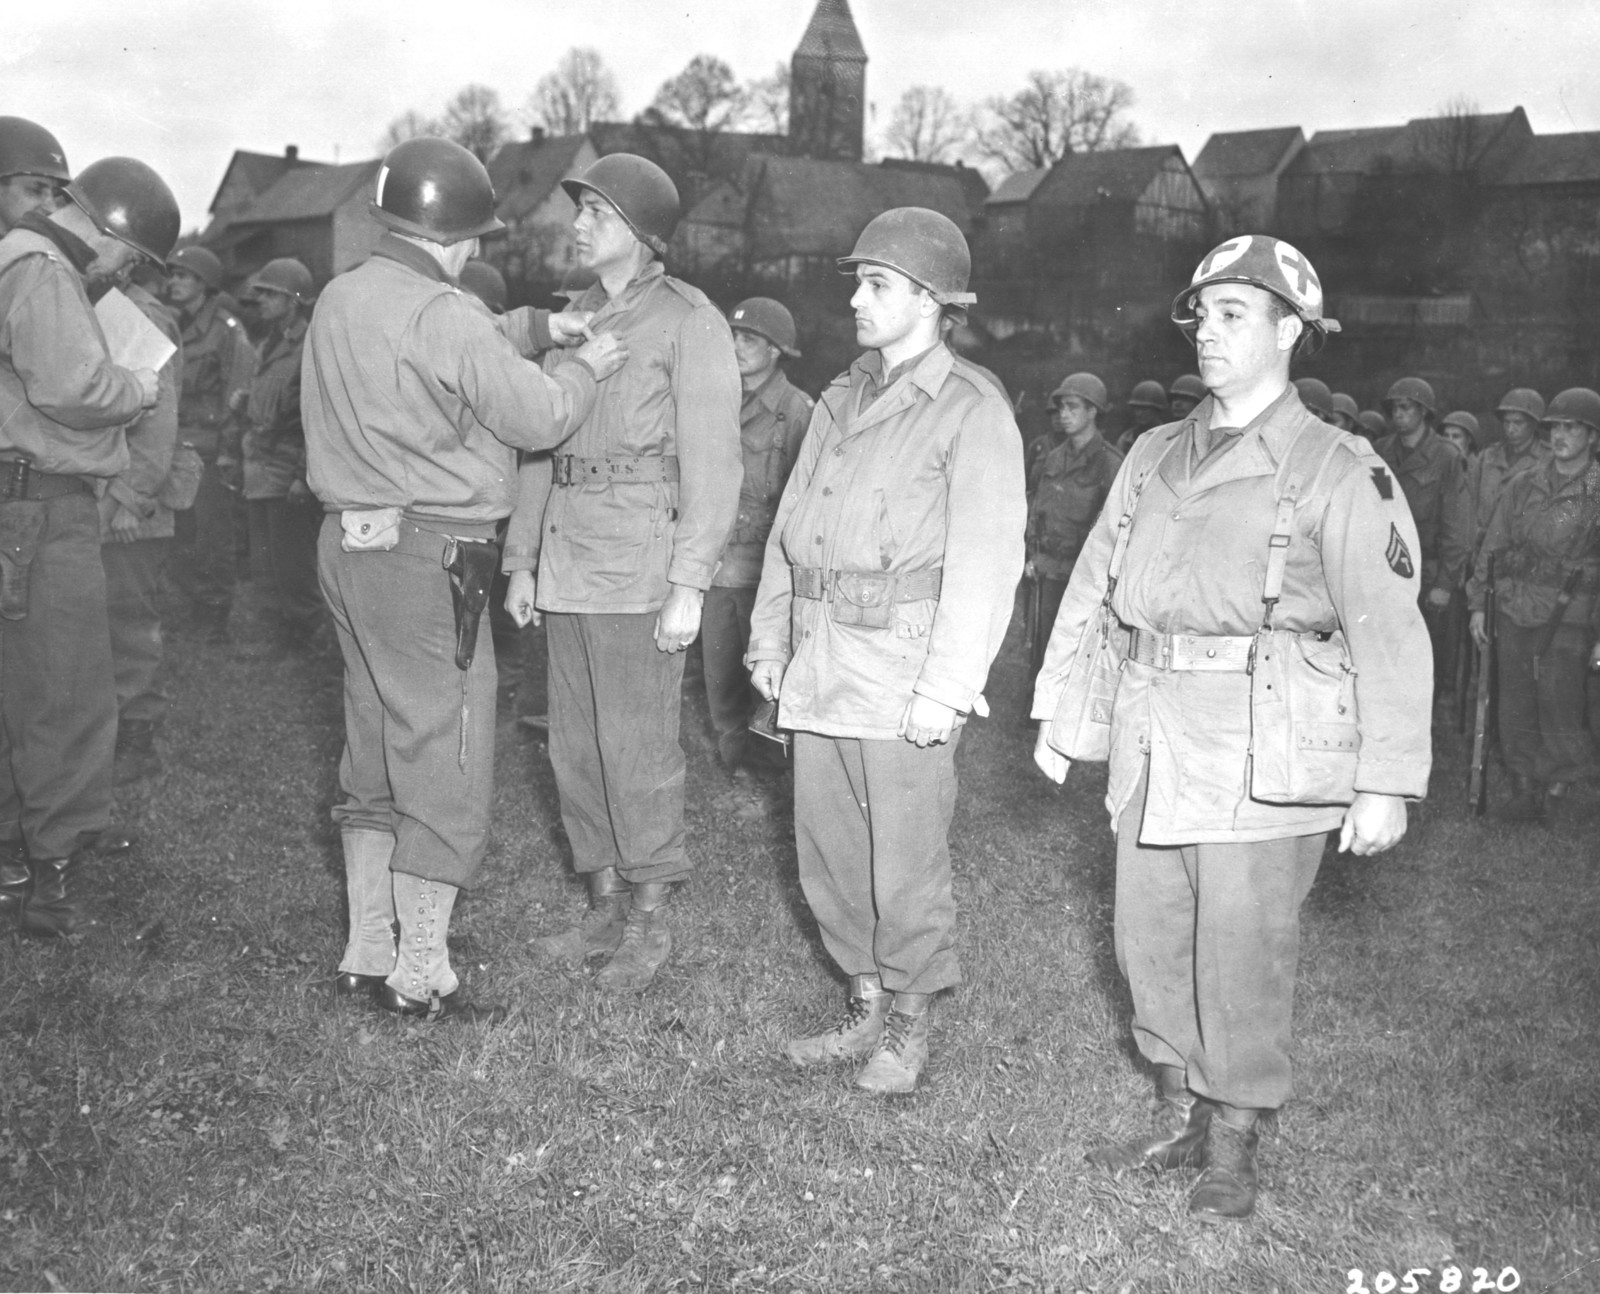 Photograph of Major General Norman Cota Presenting the Bronze Star Medal to Corporal John H. Reese, Corporal Harry D. McMahan and Tec 5 Ernest Geibel